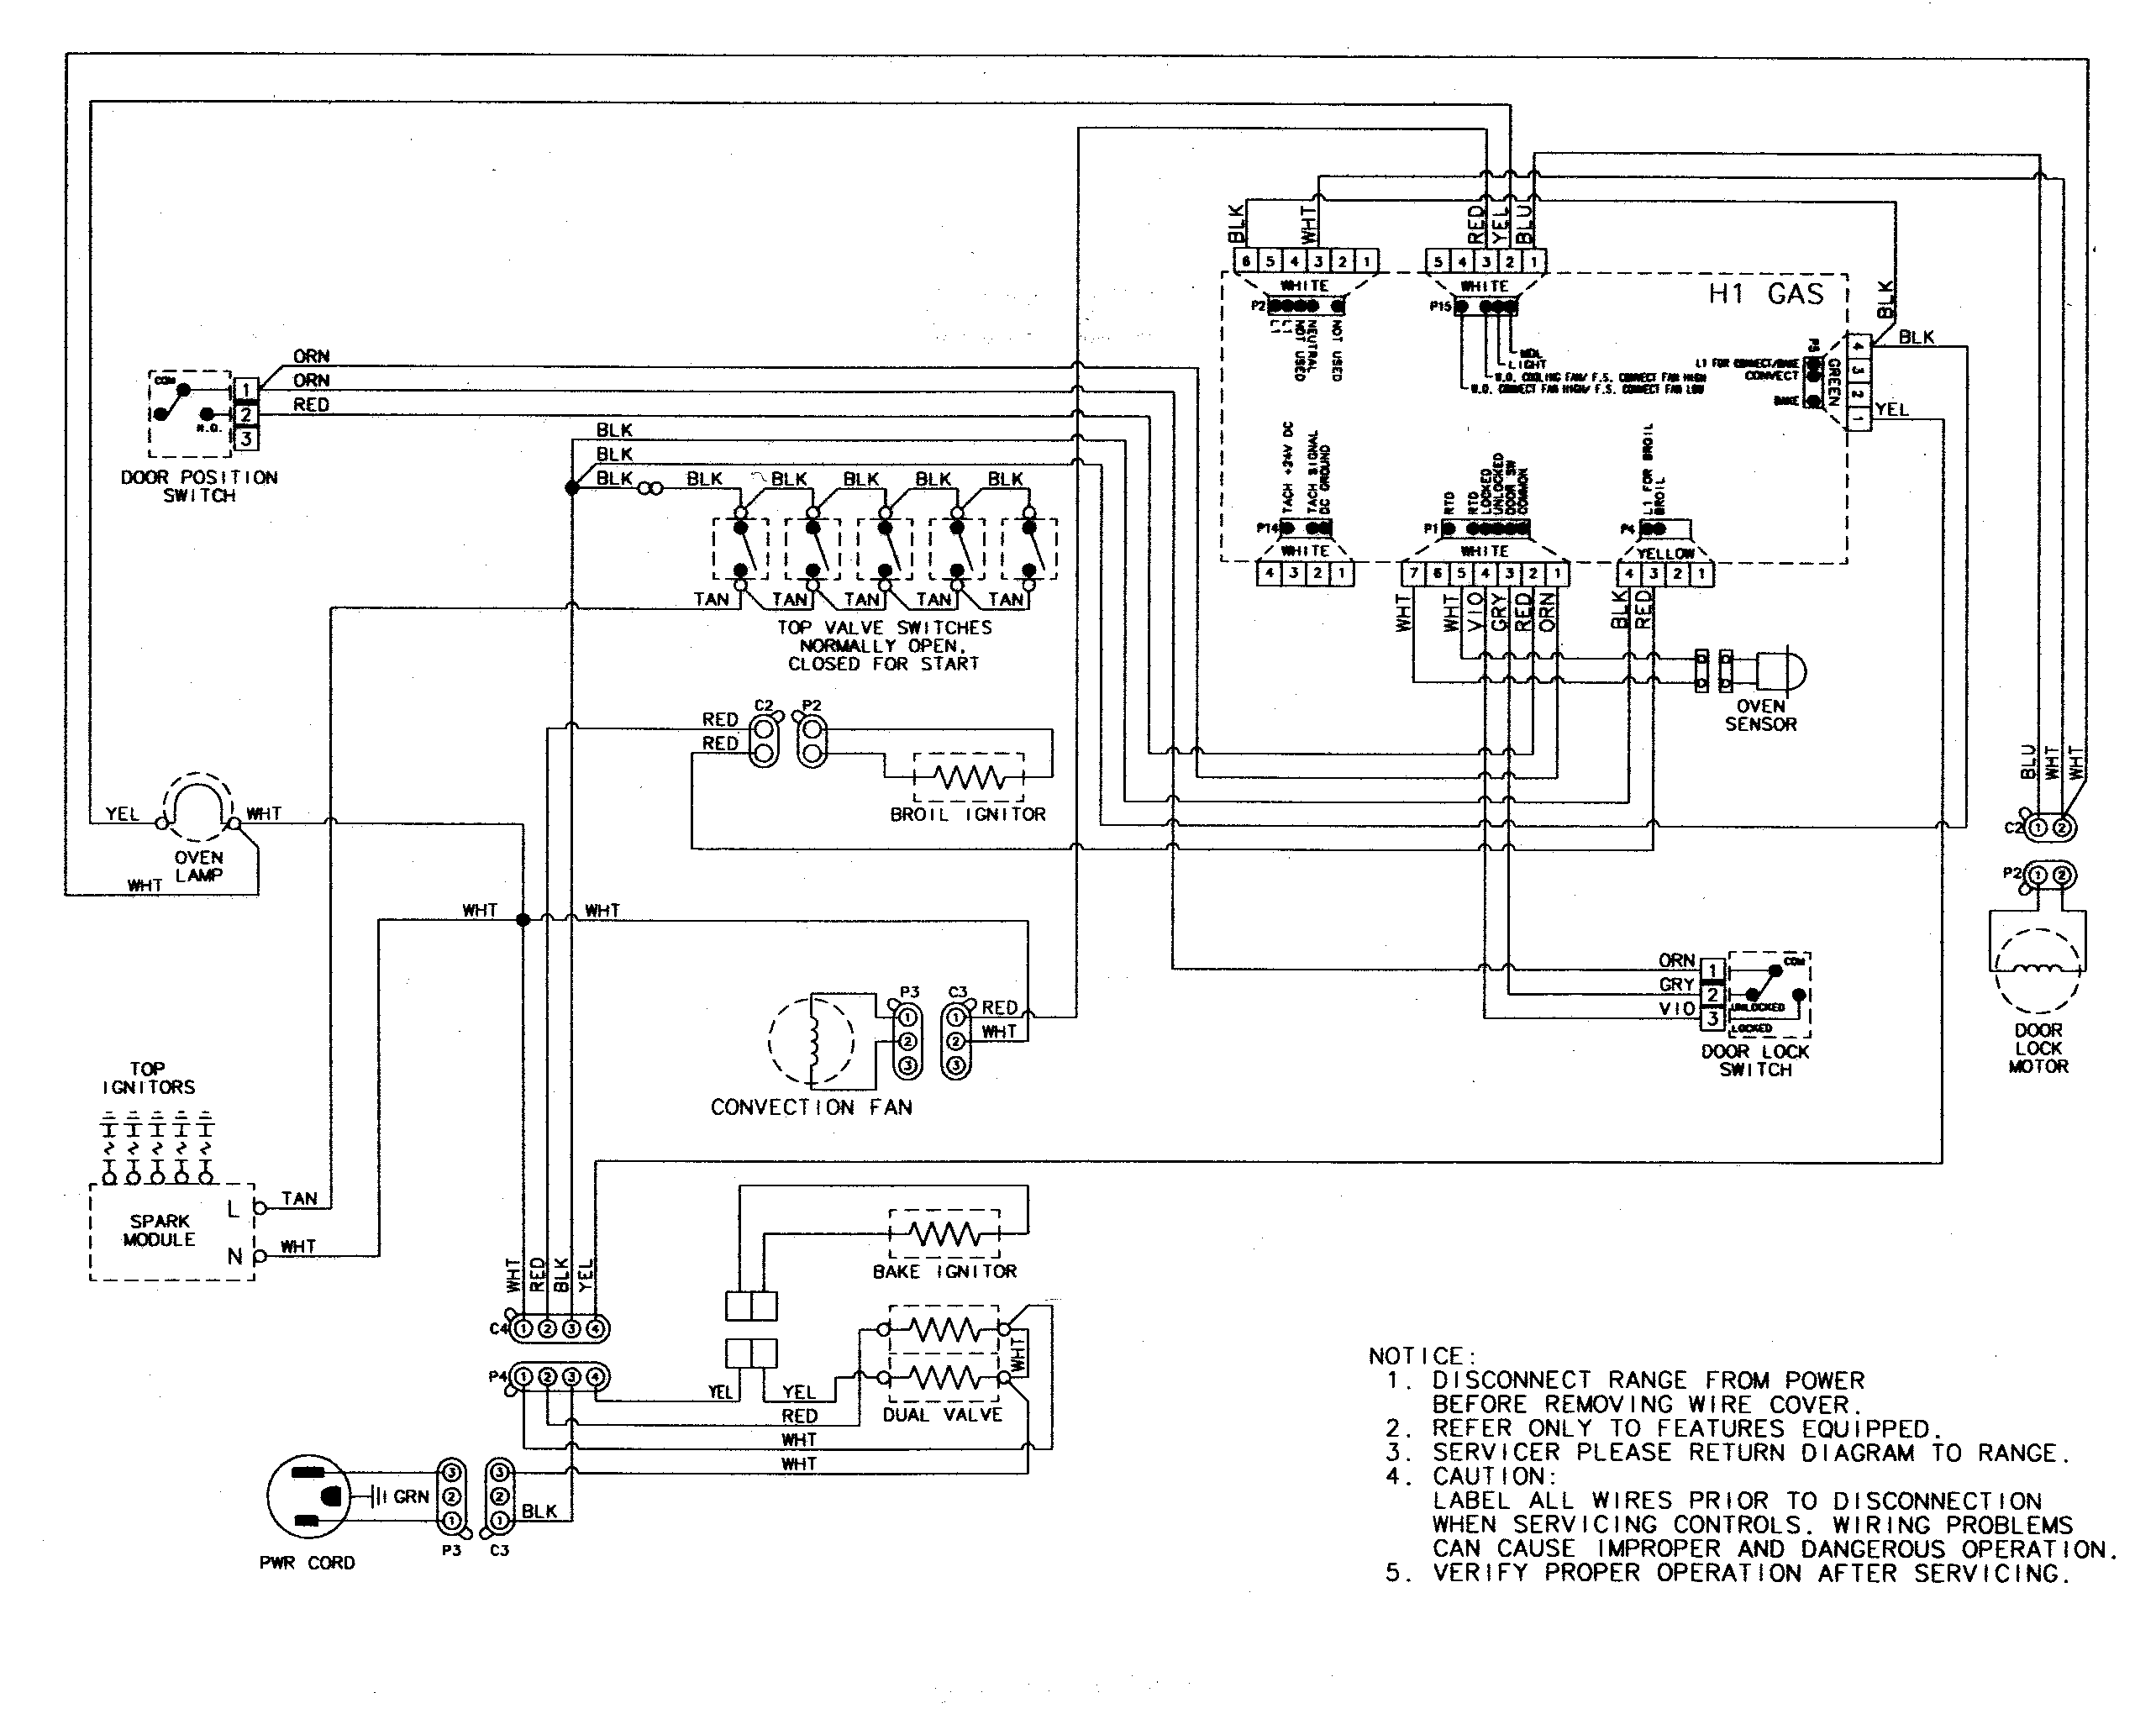 Whirlpool Dishwasher Wiring Schematics Diagram Libraries On Motor Further Diagramwiring